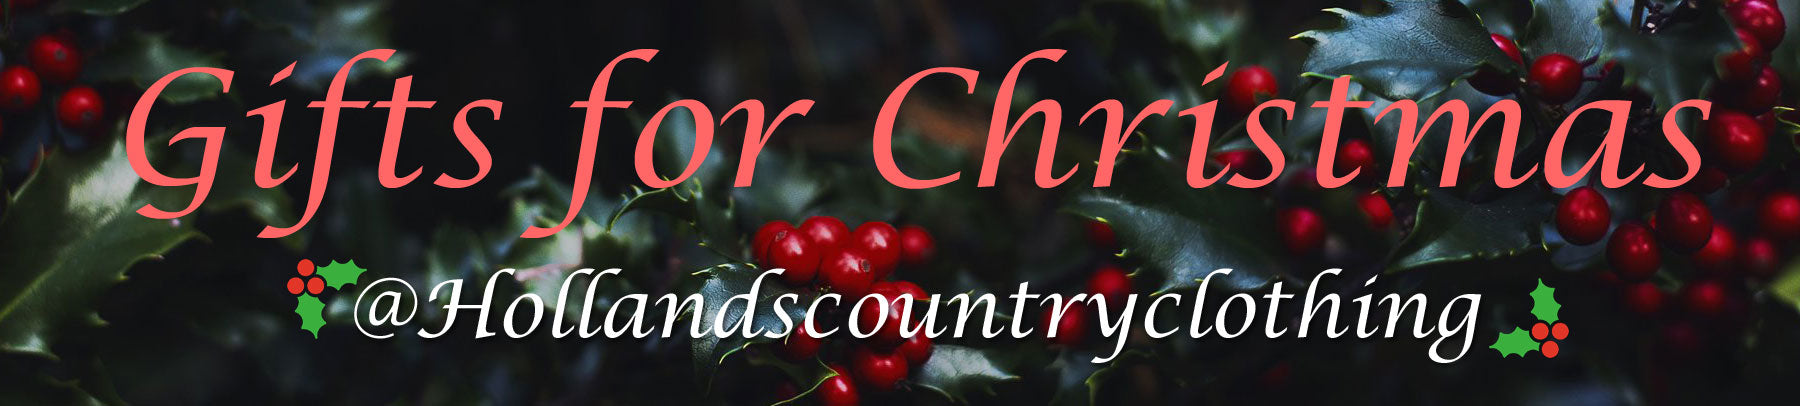 Christmas Gifts at hollands country clothing